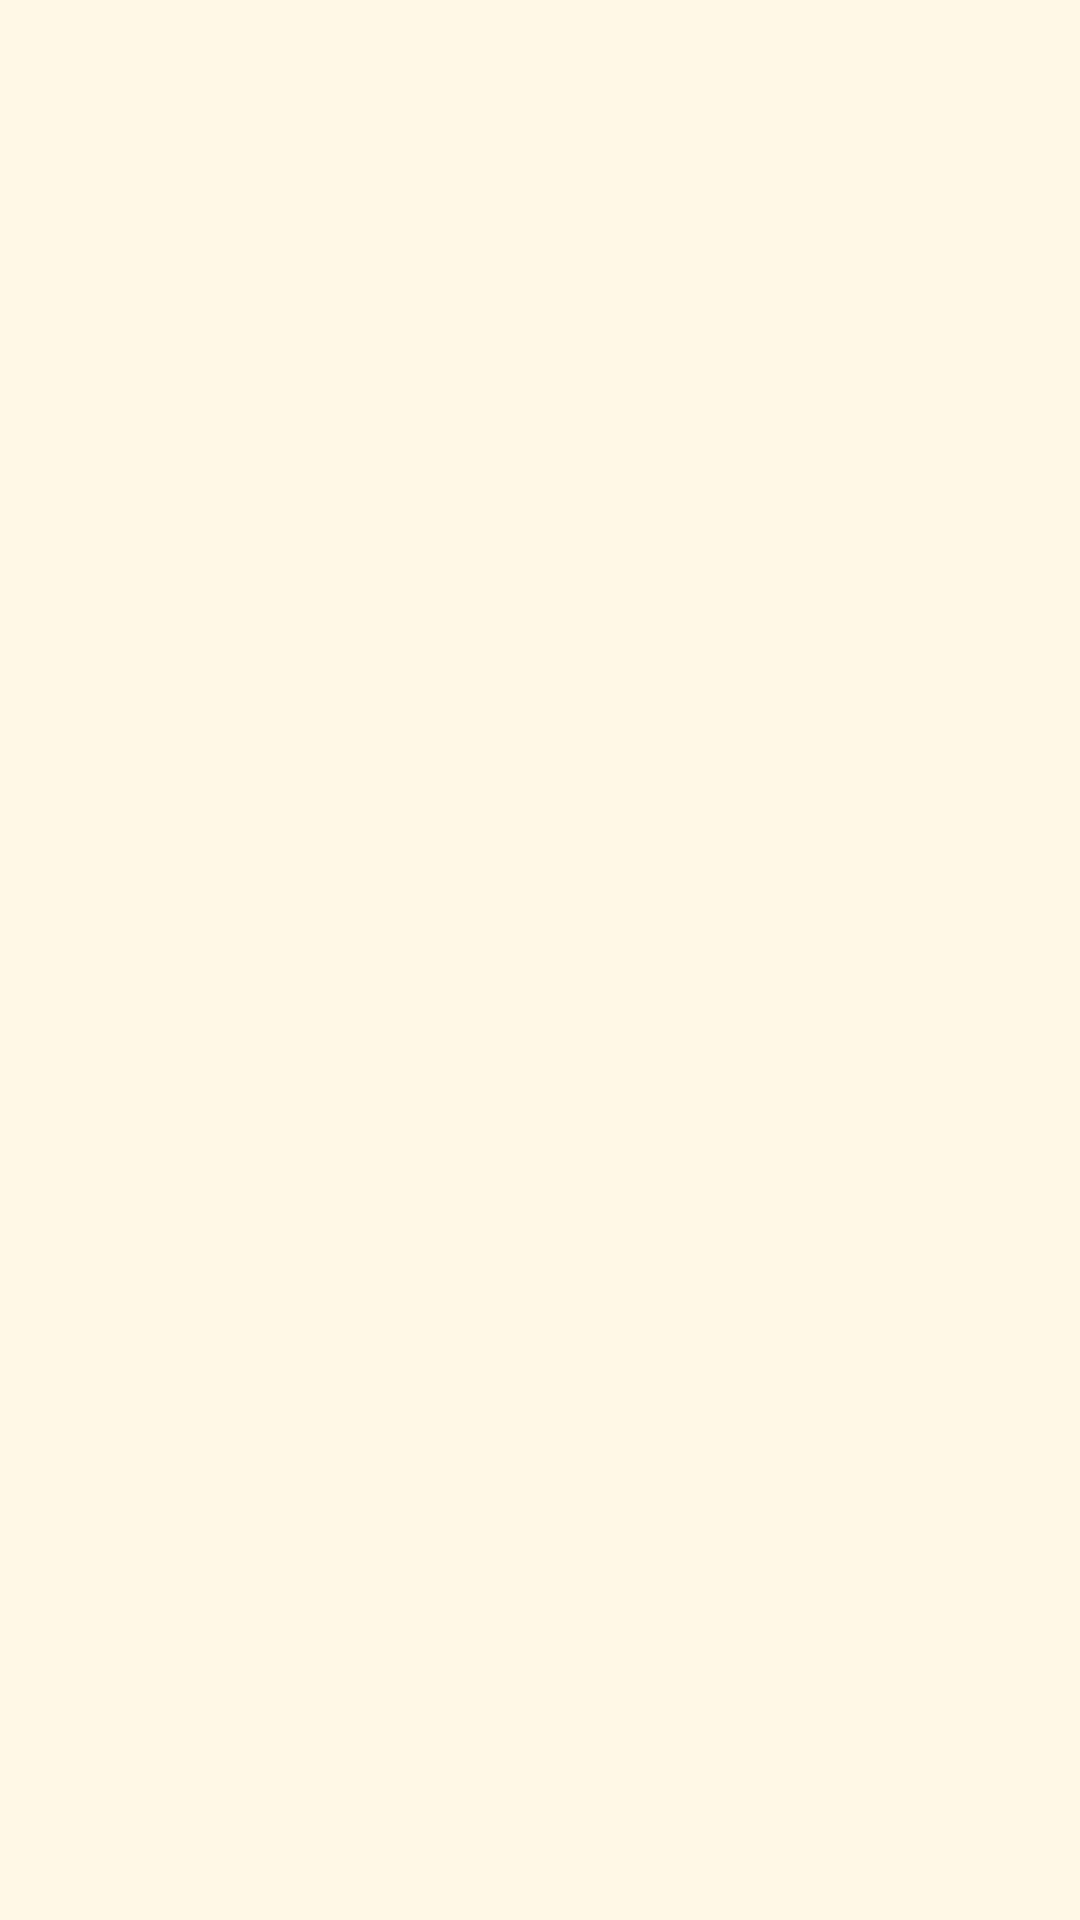 1080x1920 Cosmic Latte Solid Color Background